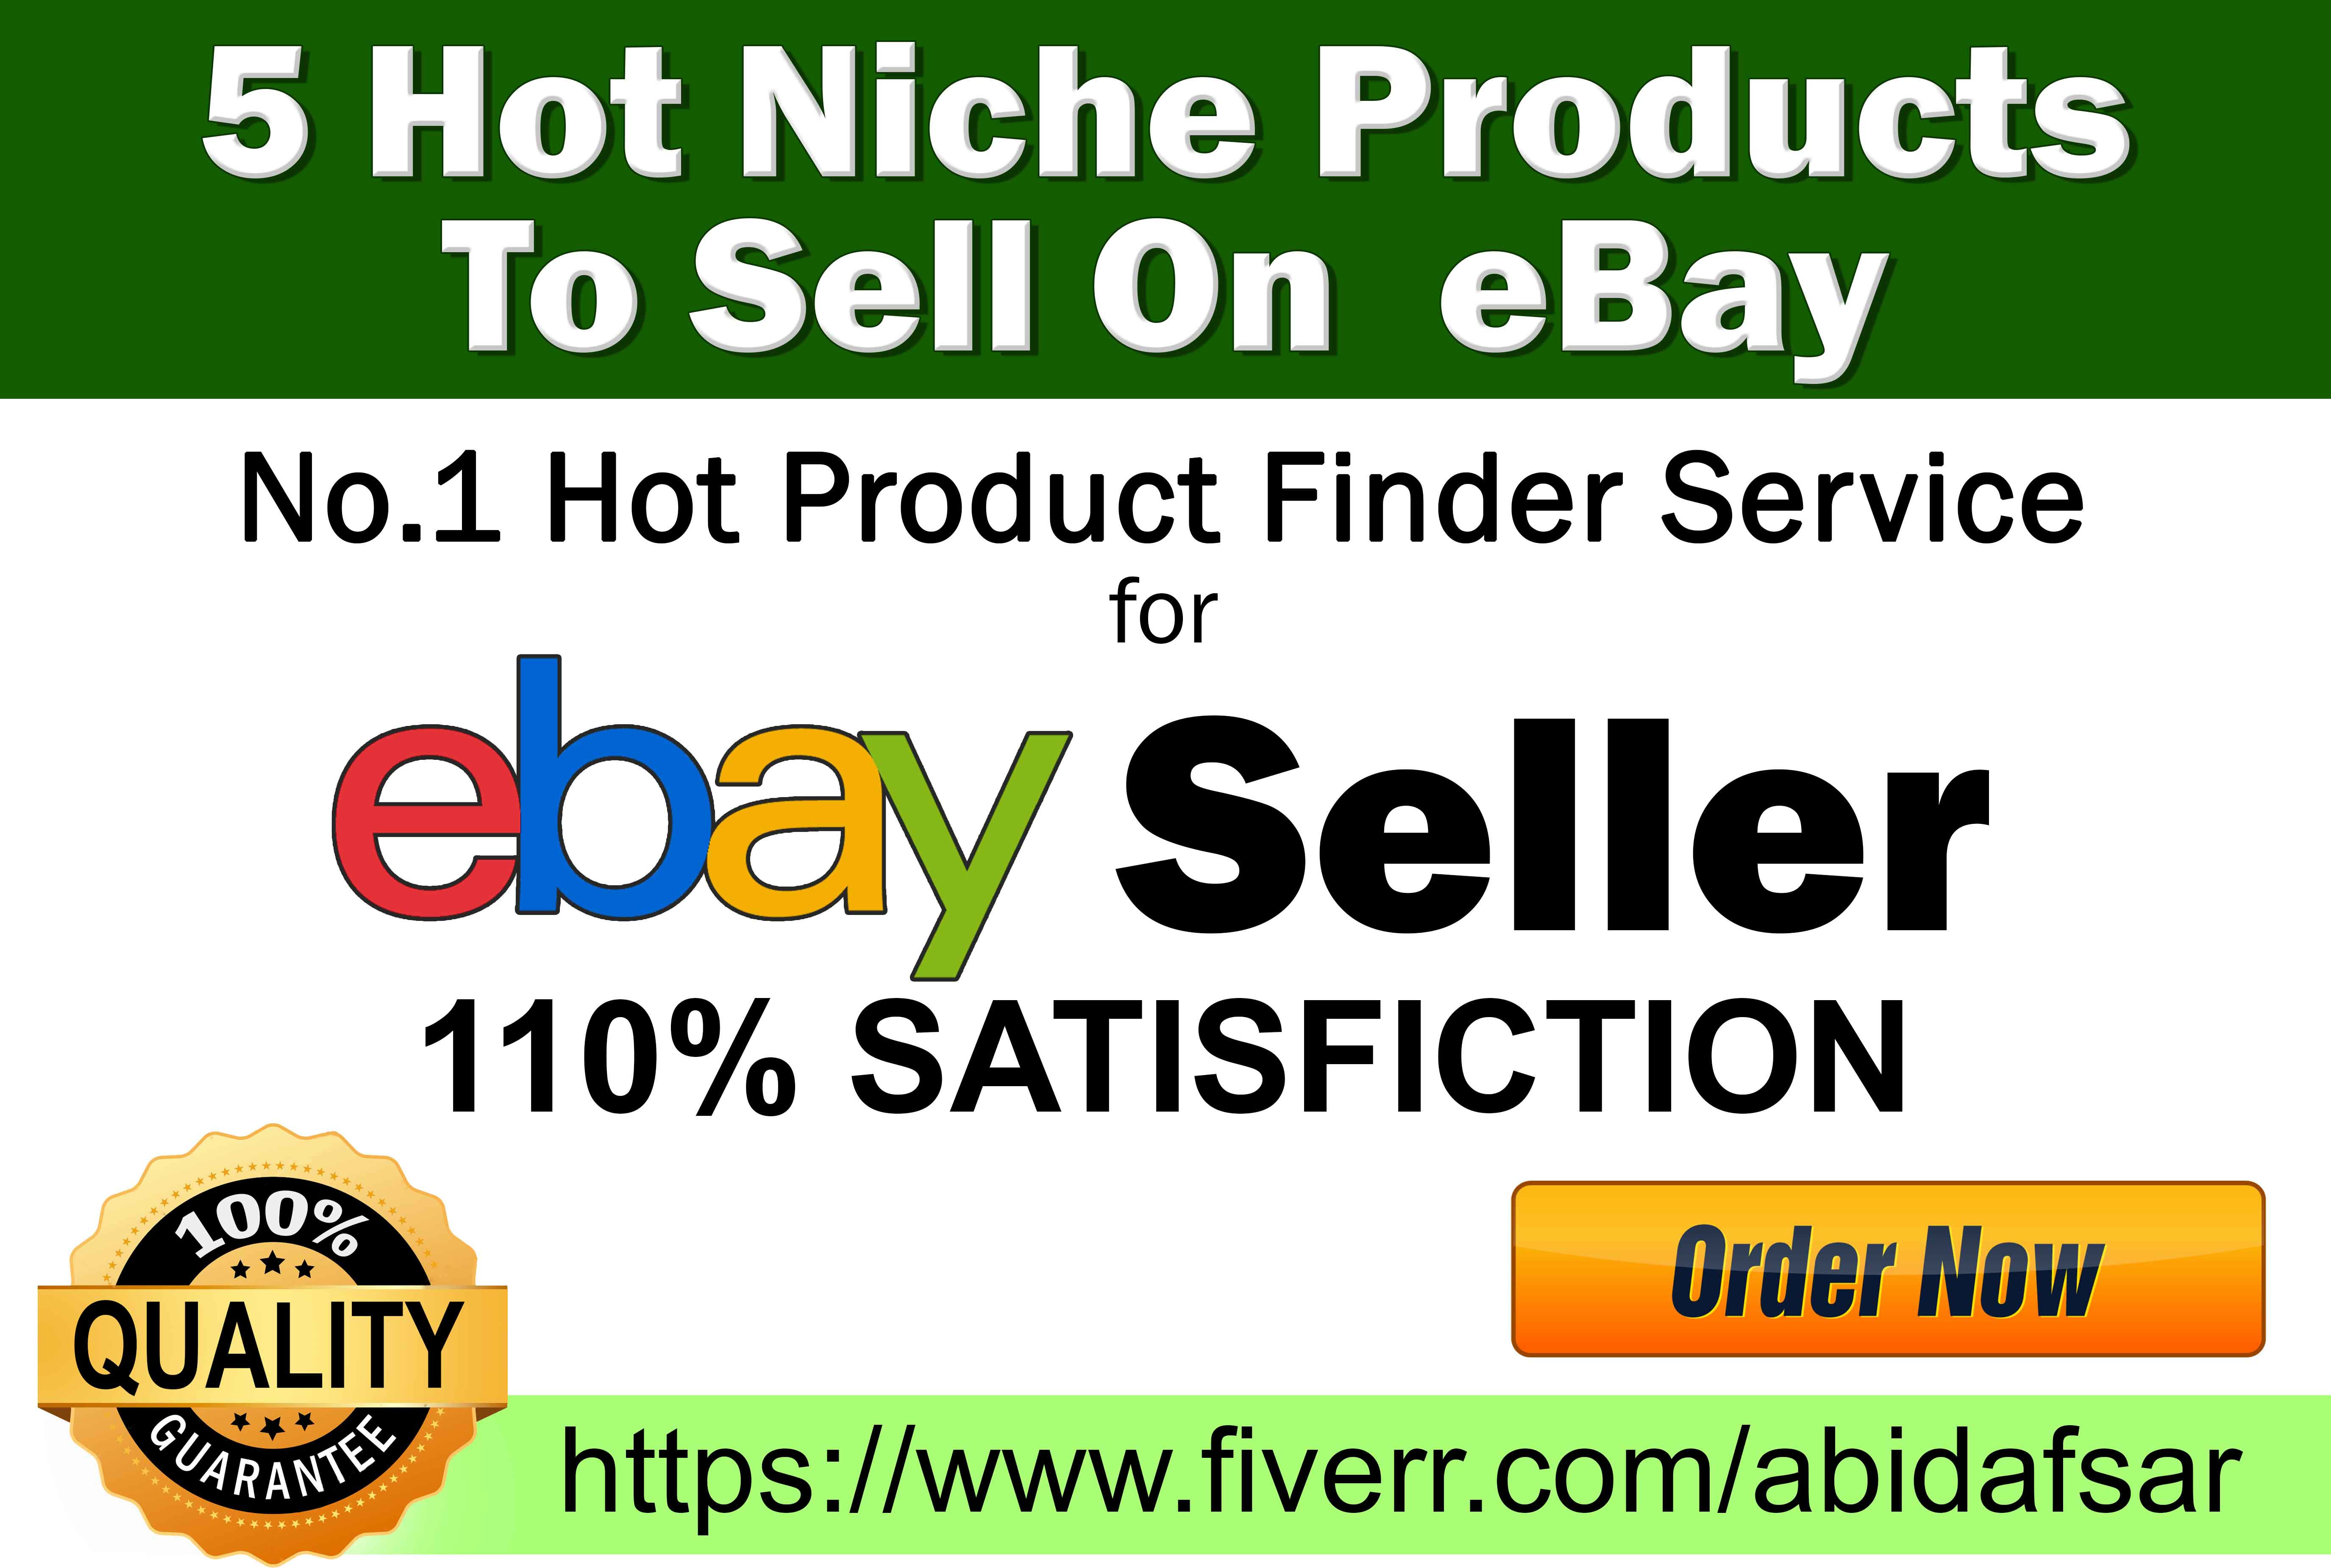 Find 5 Hot Niche Products To Sell On Ebay For Good Profit By Abidafsar